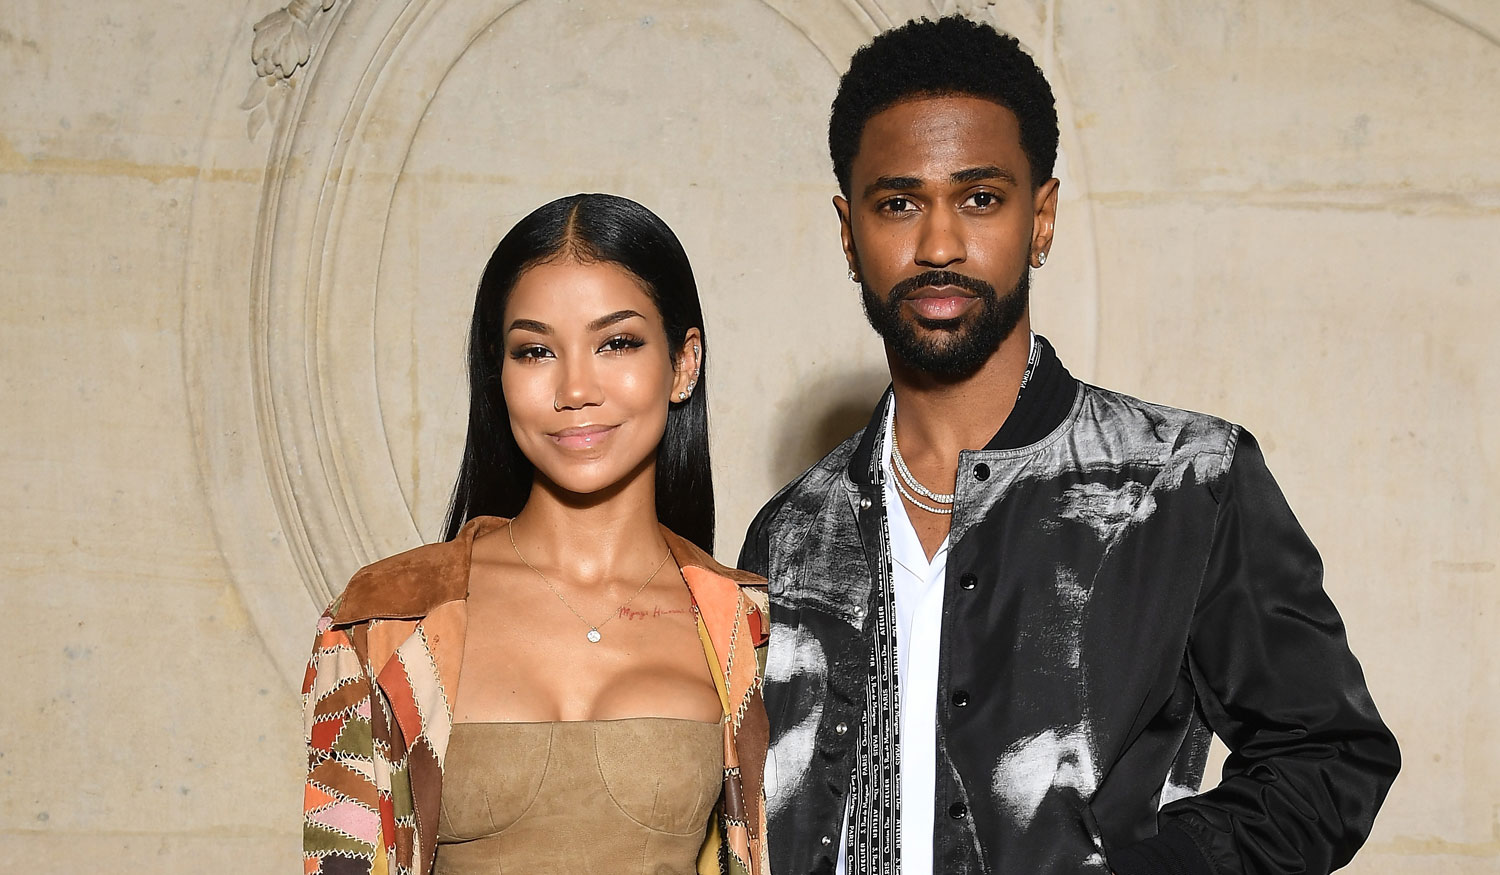 Big Sean Makes Very Intimate Confession About Jhene Aiko in Their New Song - Just Jared